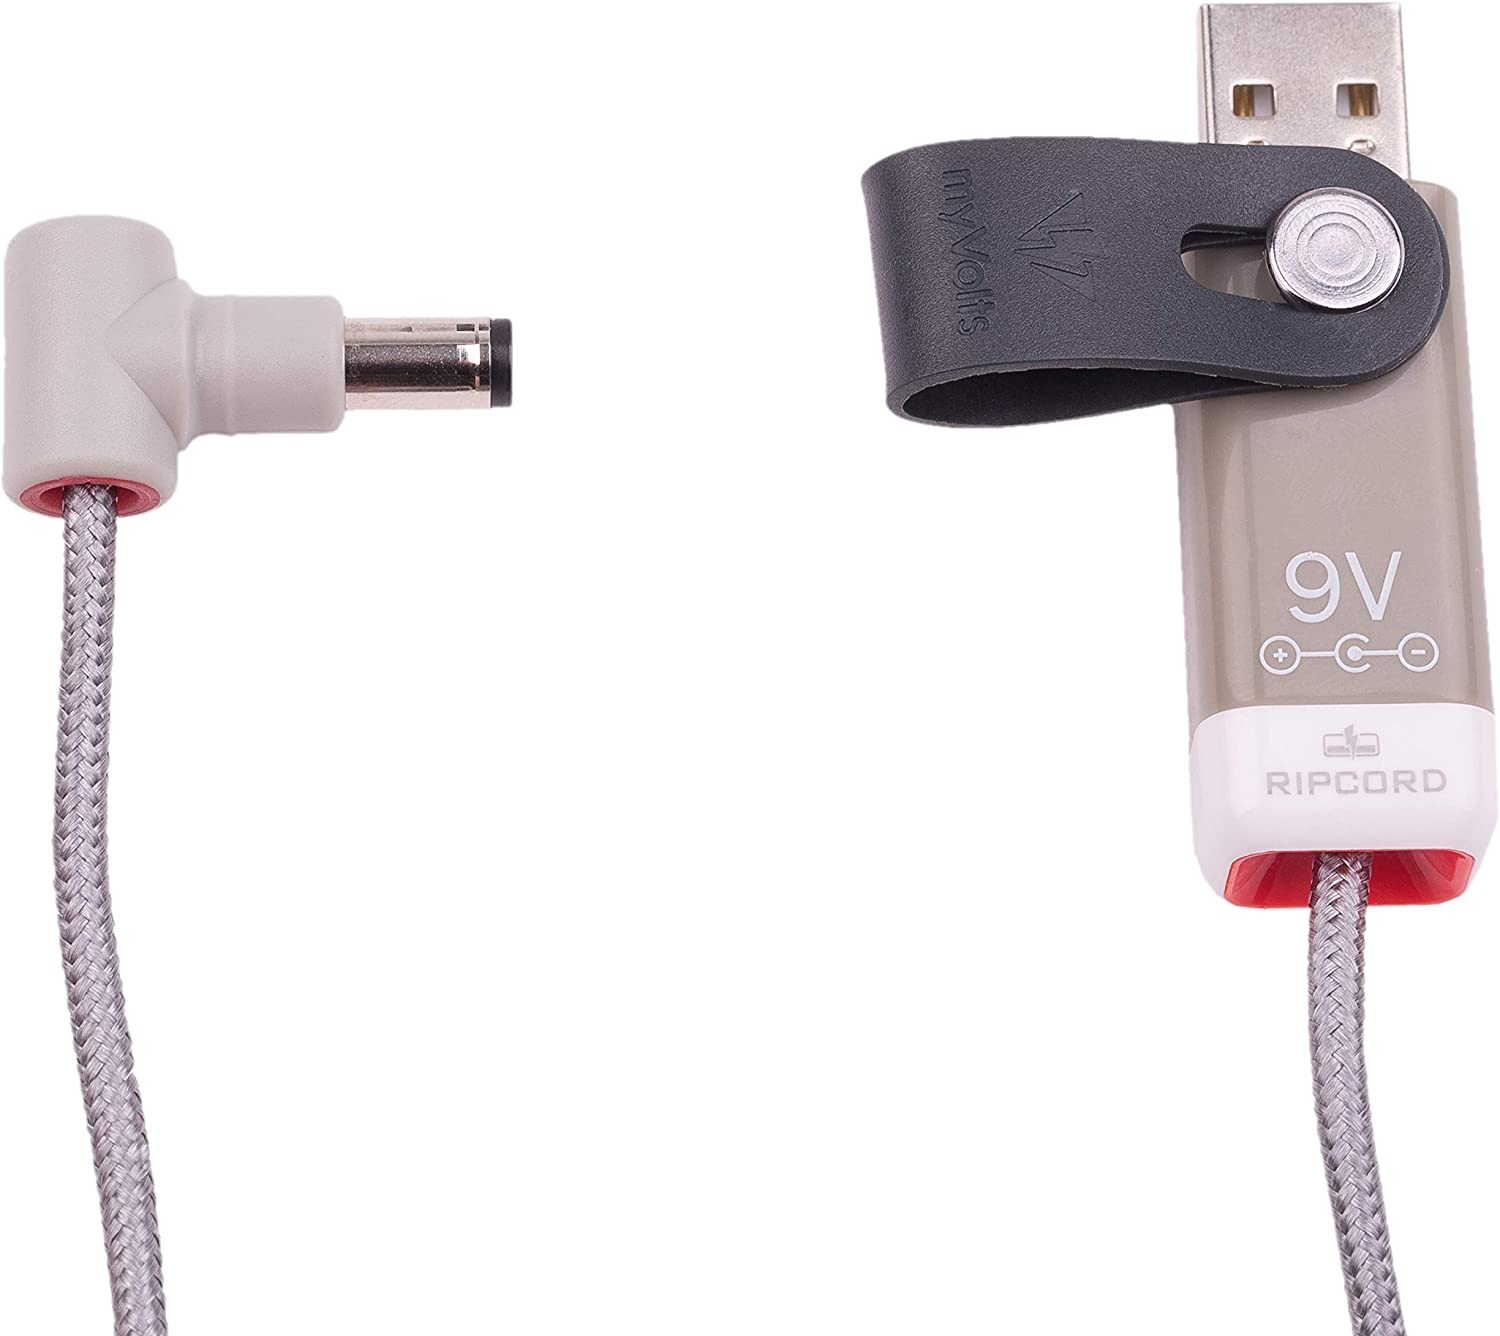 myVolts Ripcord USB to 9V DC Power Cable Compatible with The Brother PT-2730VP Label Printer